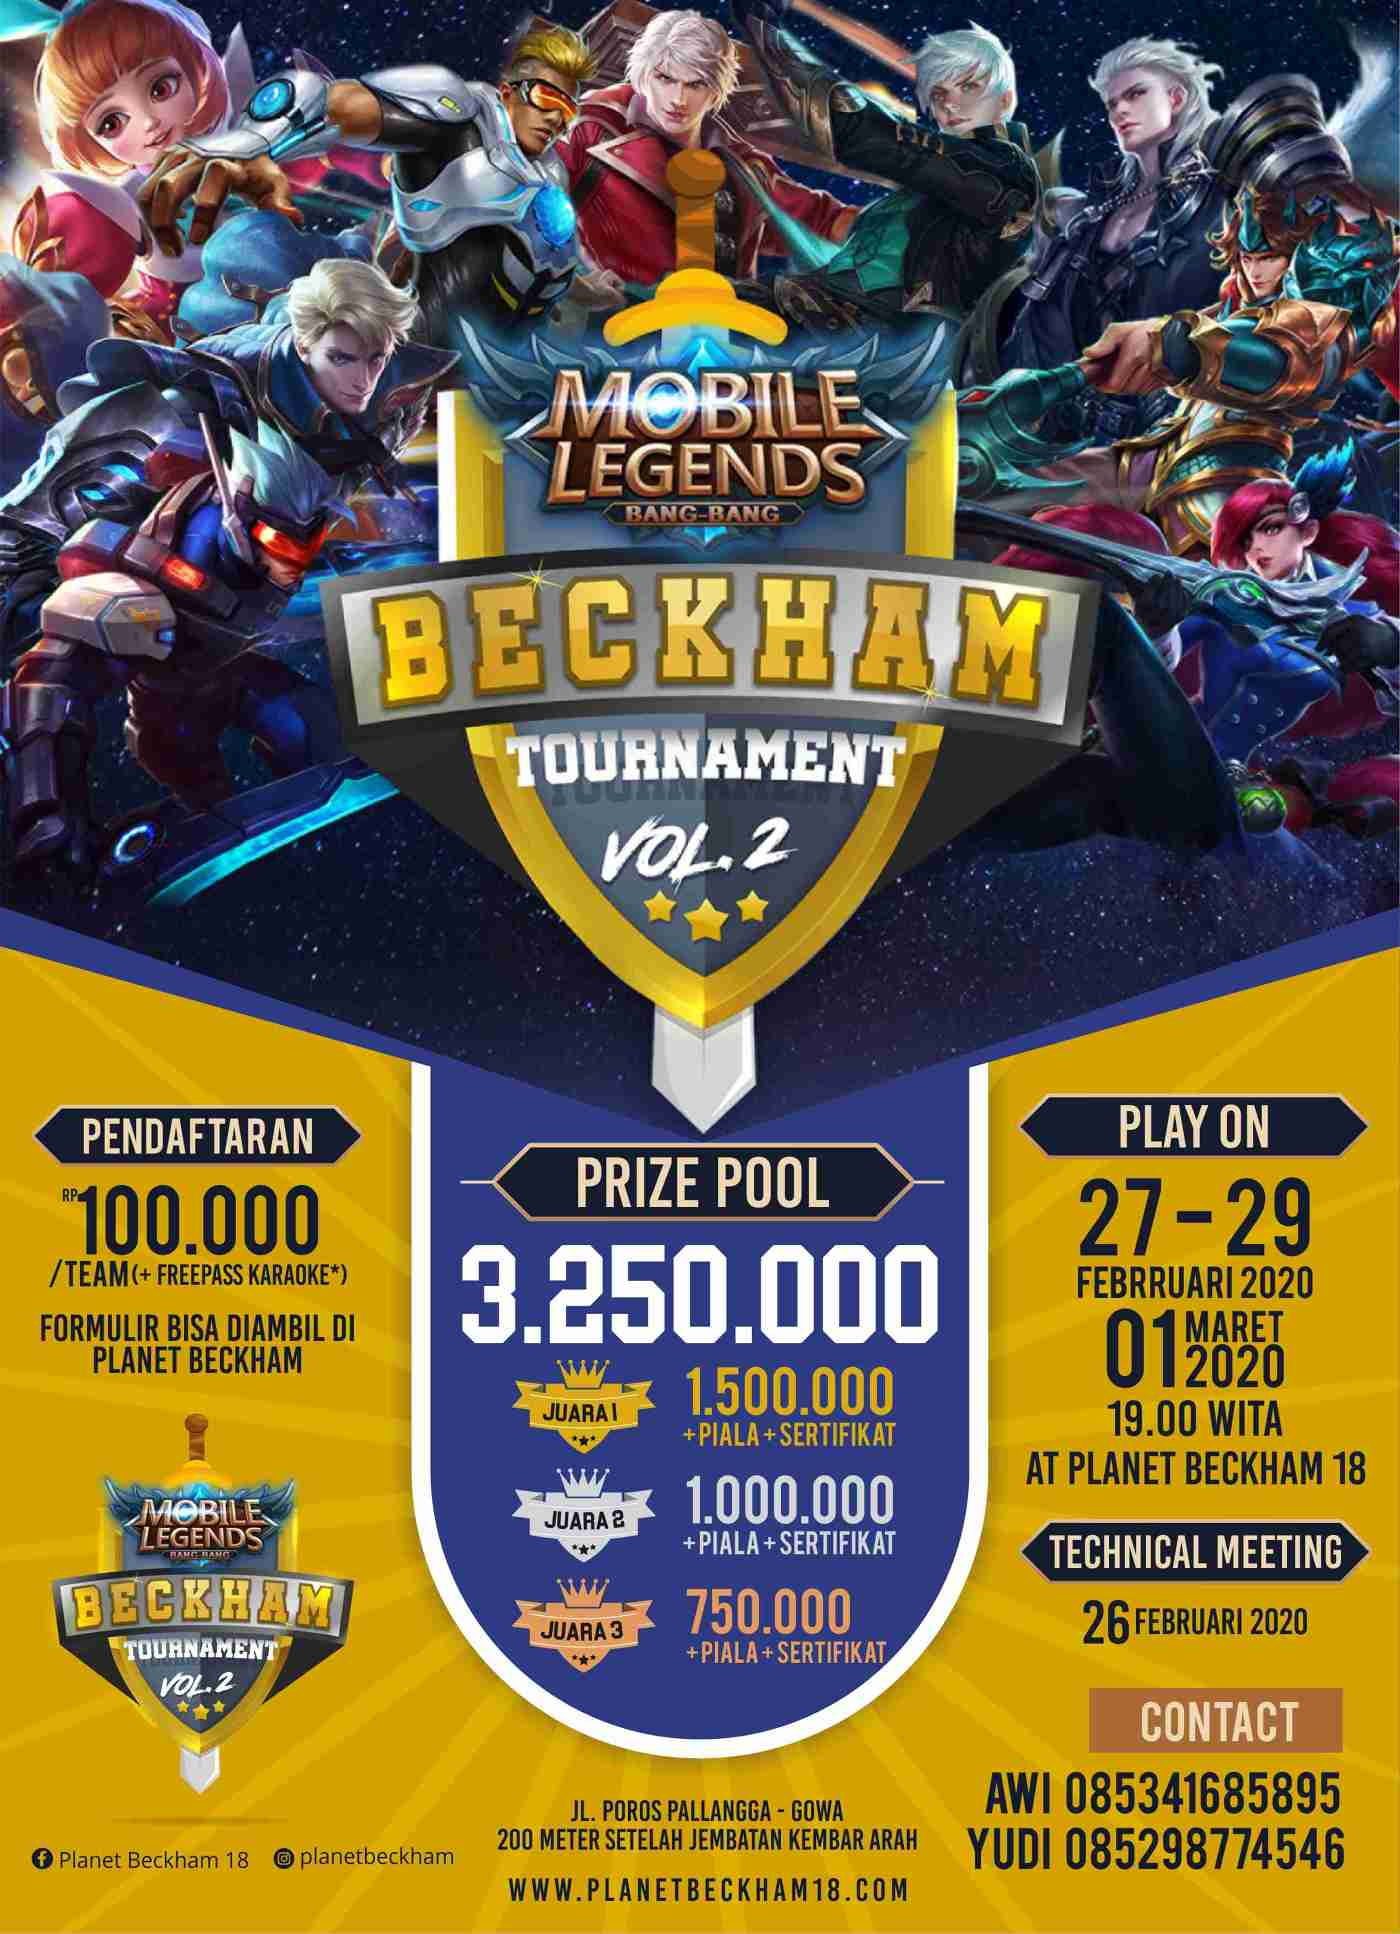 Mobile Legend Beckham Tournament vol. 2